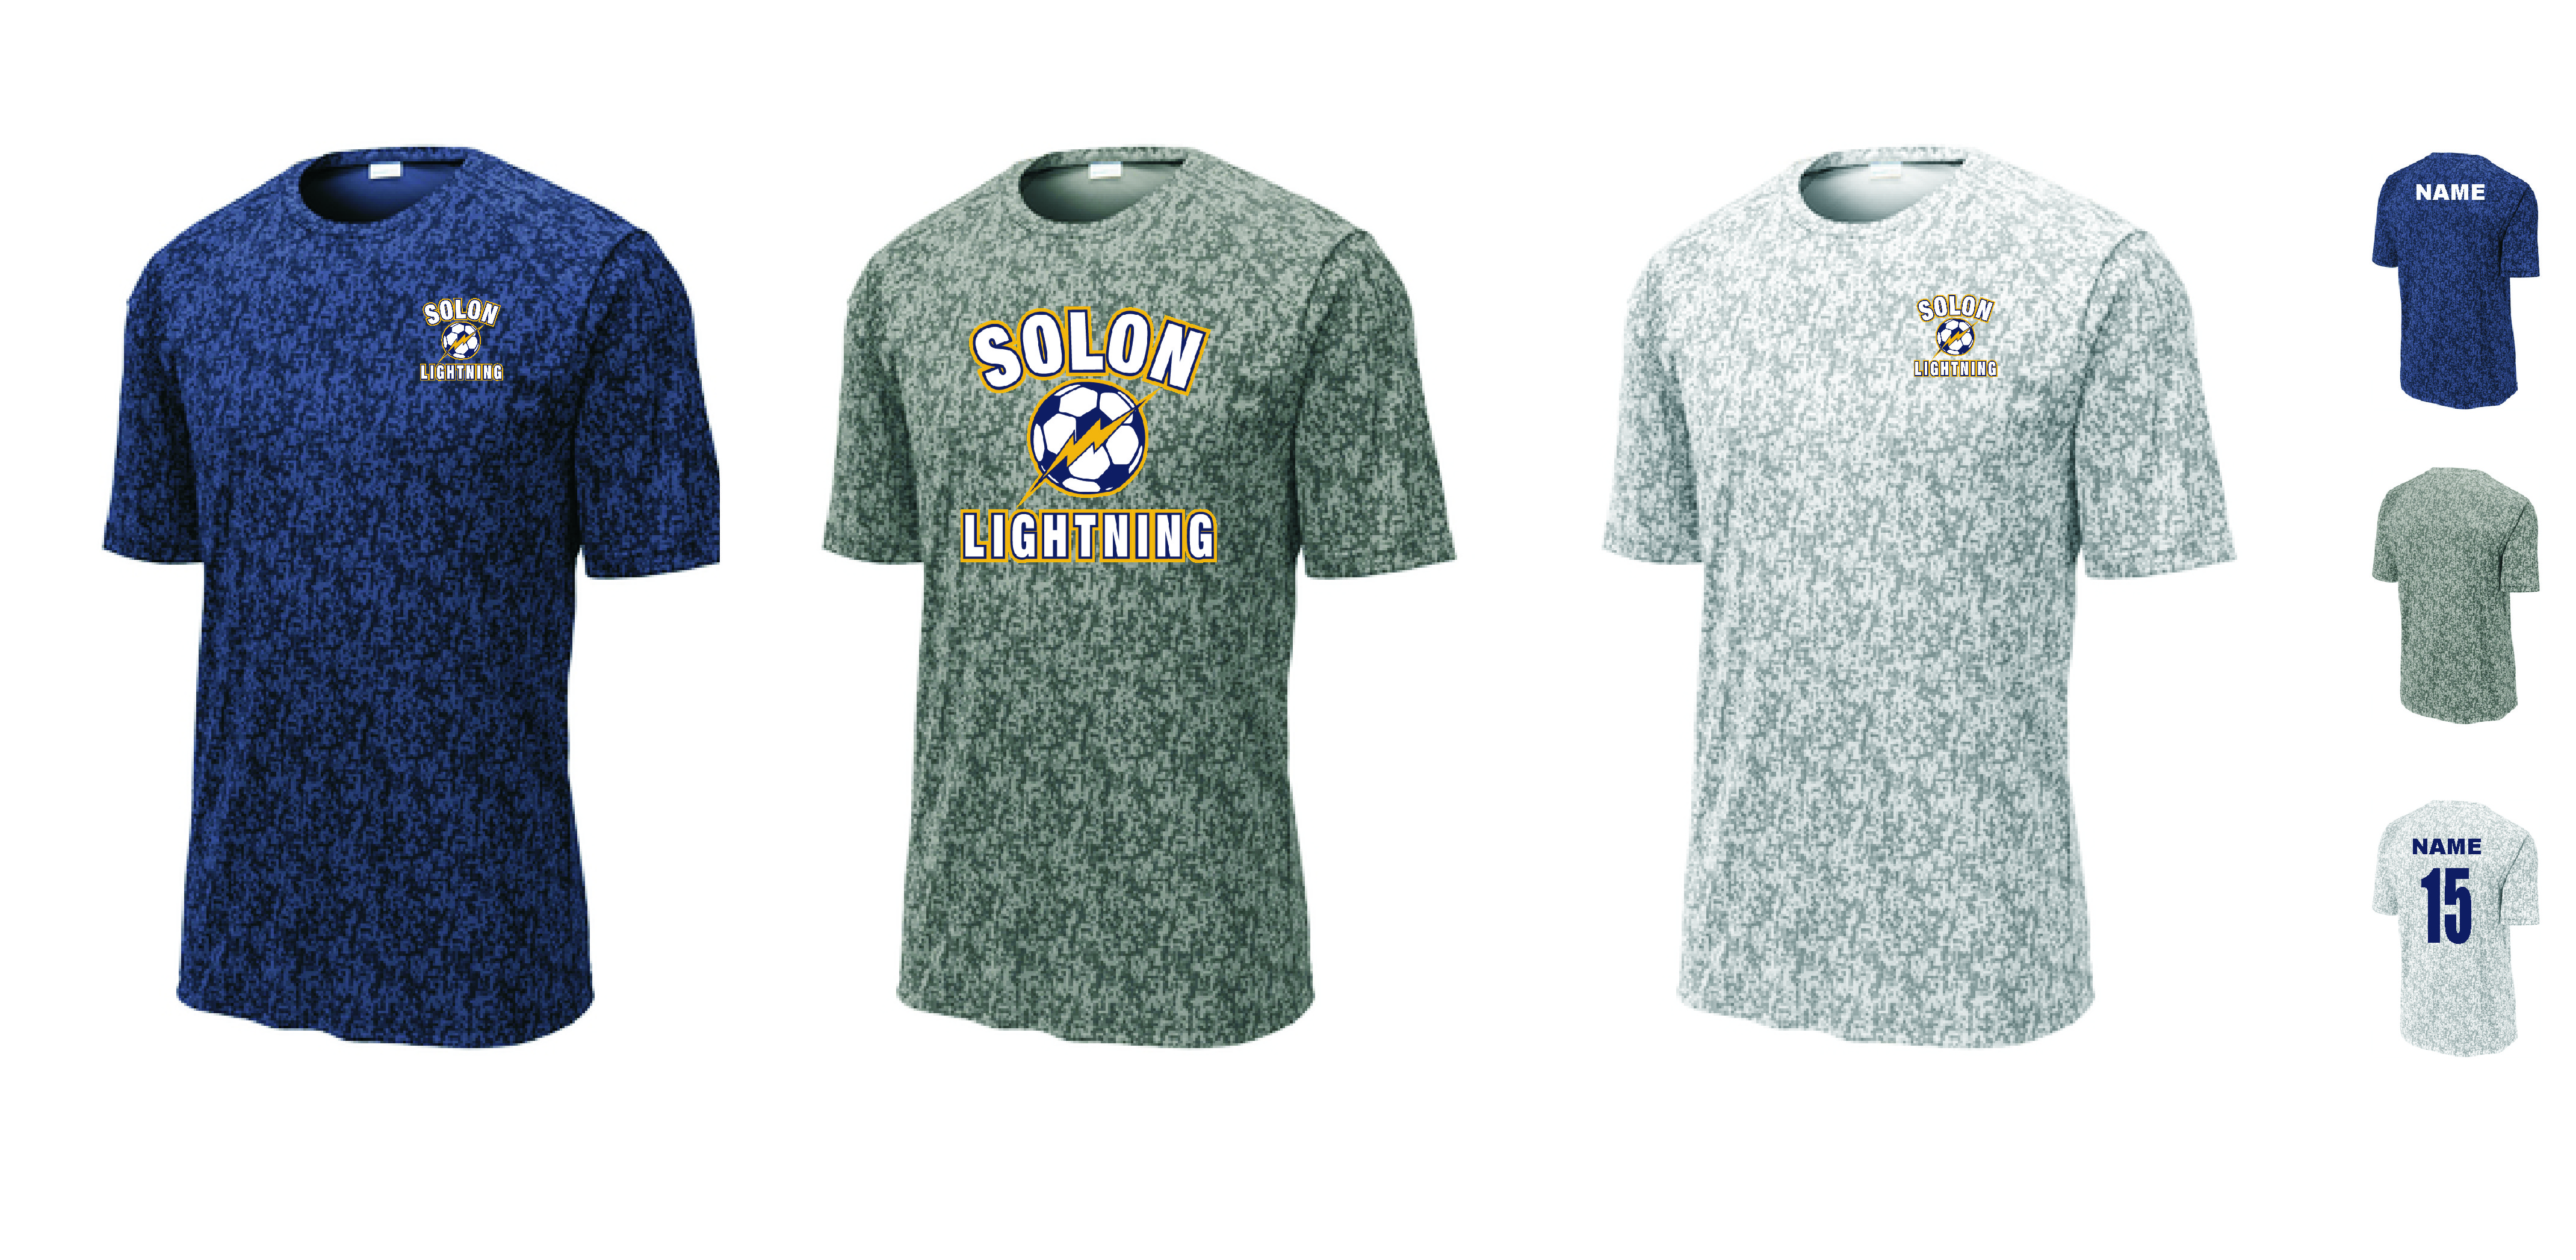 Solon Sport Tek Digi Camo Tee Curbside pickup available within 2 hours of ordering. frontline soccer shop